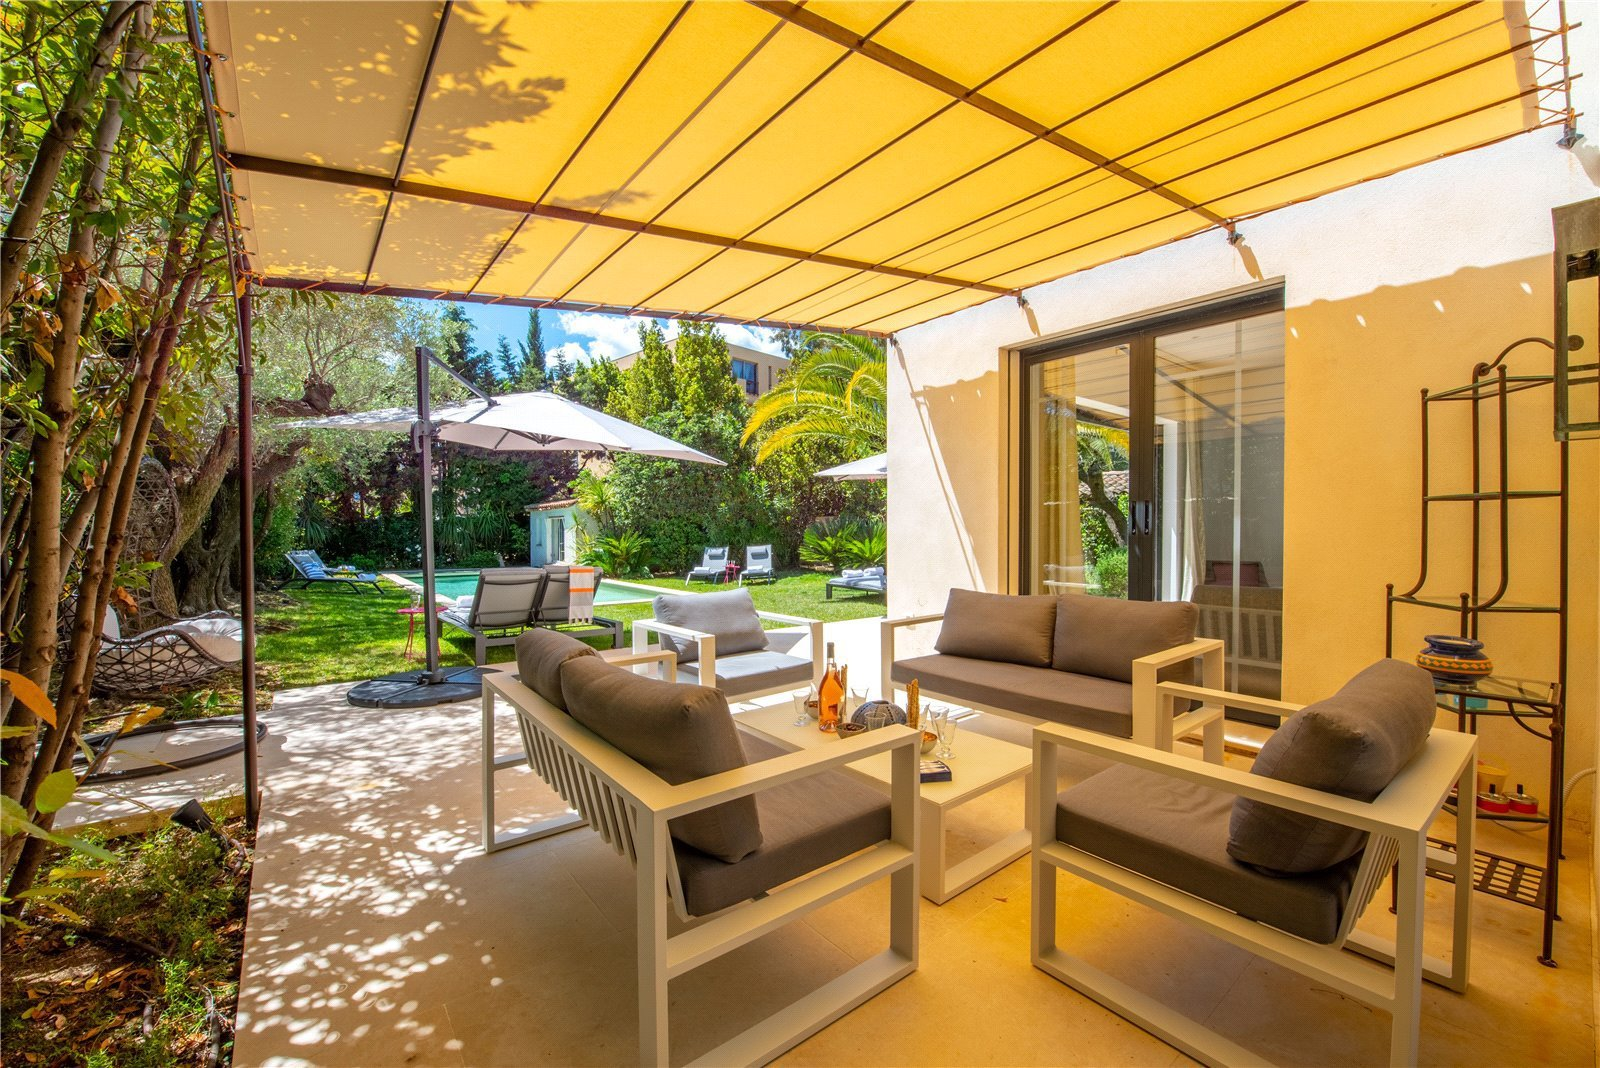 Rental Villa Saint-Tropez Splendid villa located in a residential and private domain within walking distance to the centre of Saint-Tropez.